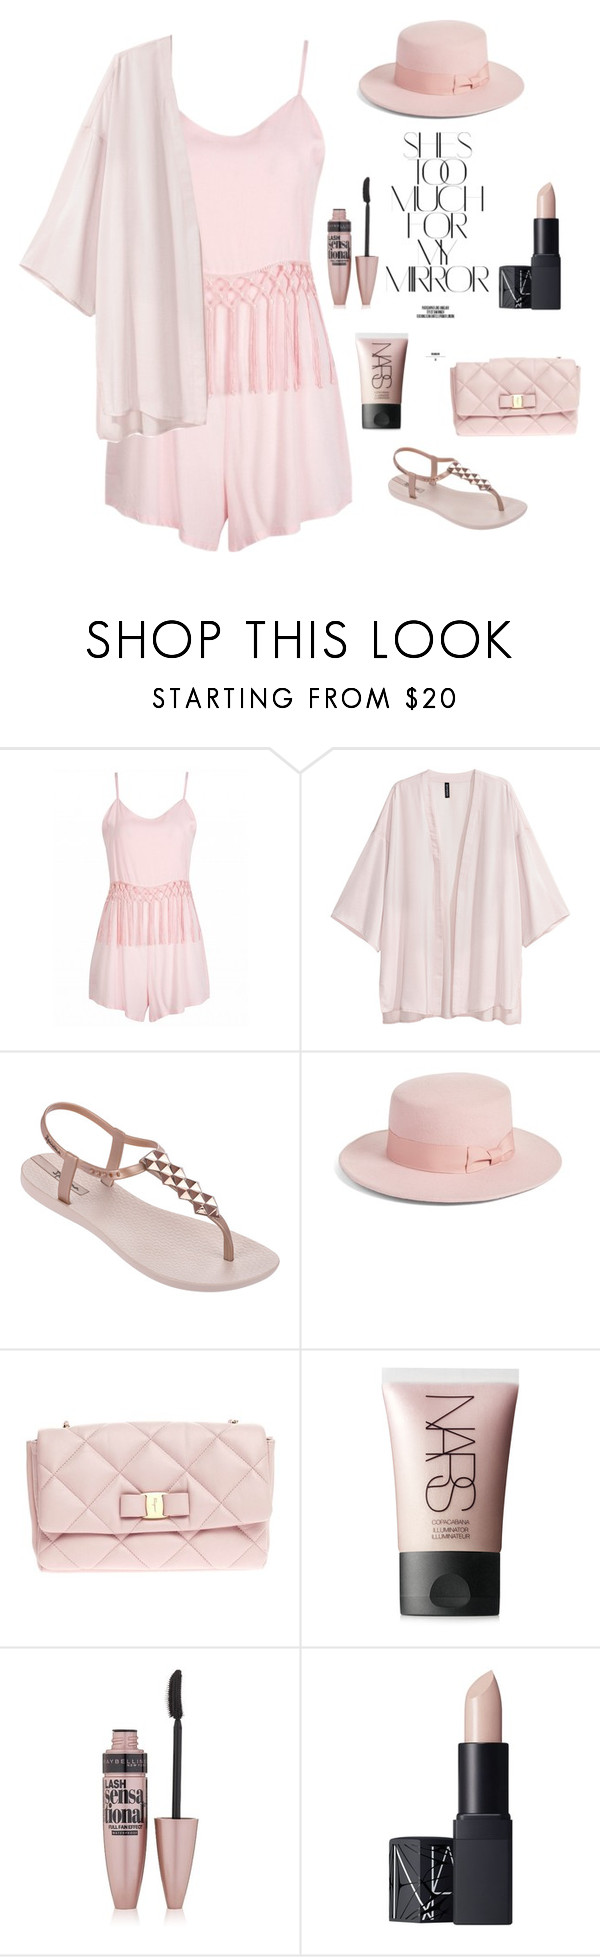 """Untitled #870"" by nikola-sperlikova ❤ liked on Polyvore featuring IPANEMA, Lack of Color, Salvatore Ferragamo, Rika, NARS Cosmetics and Maybelline"